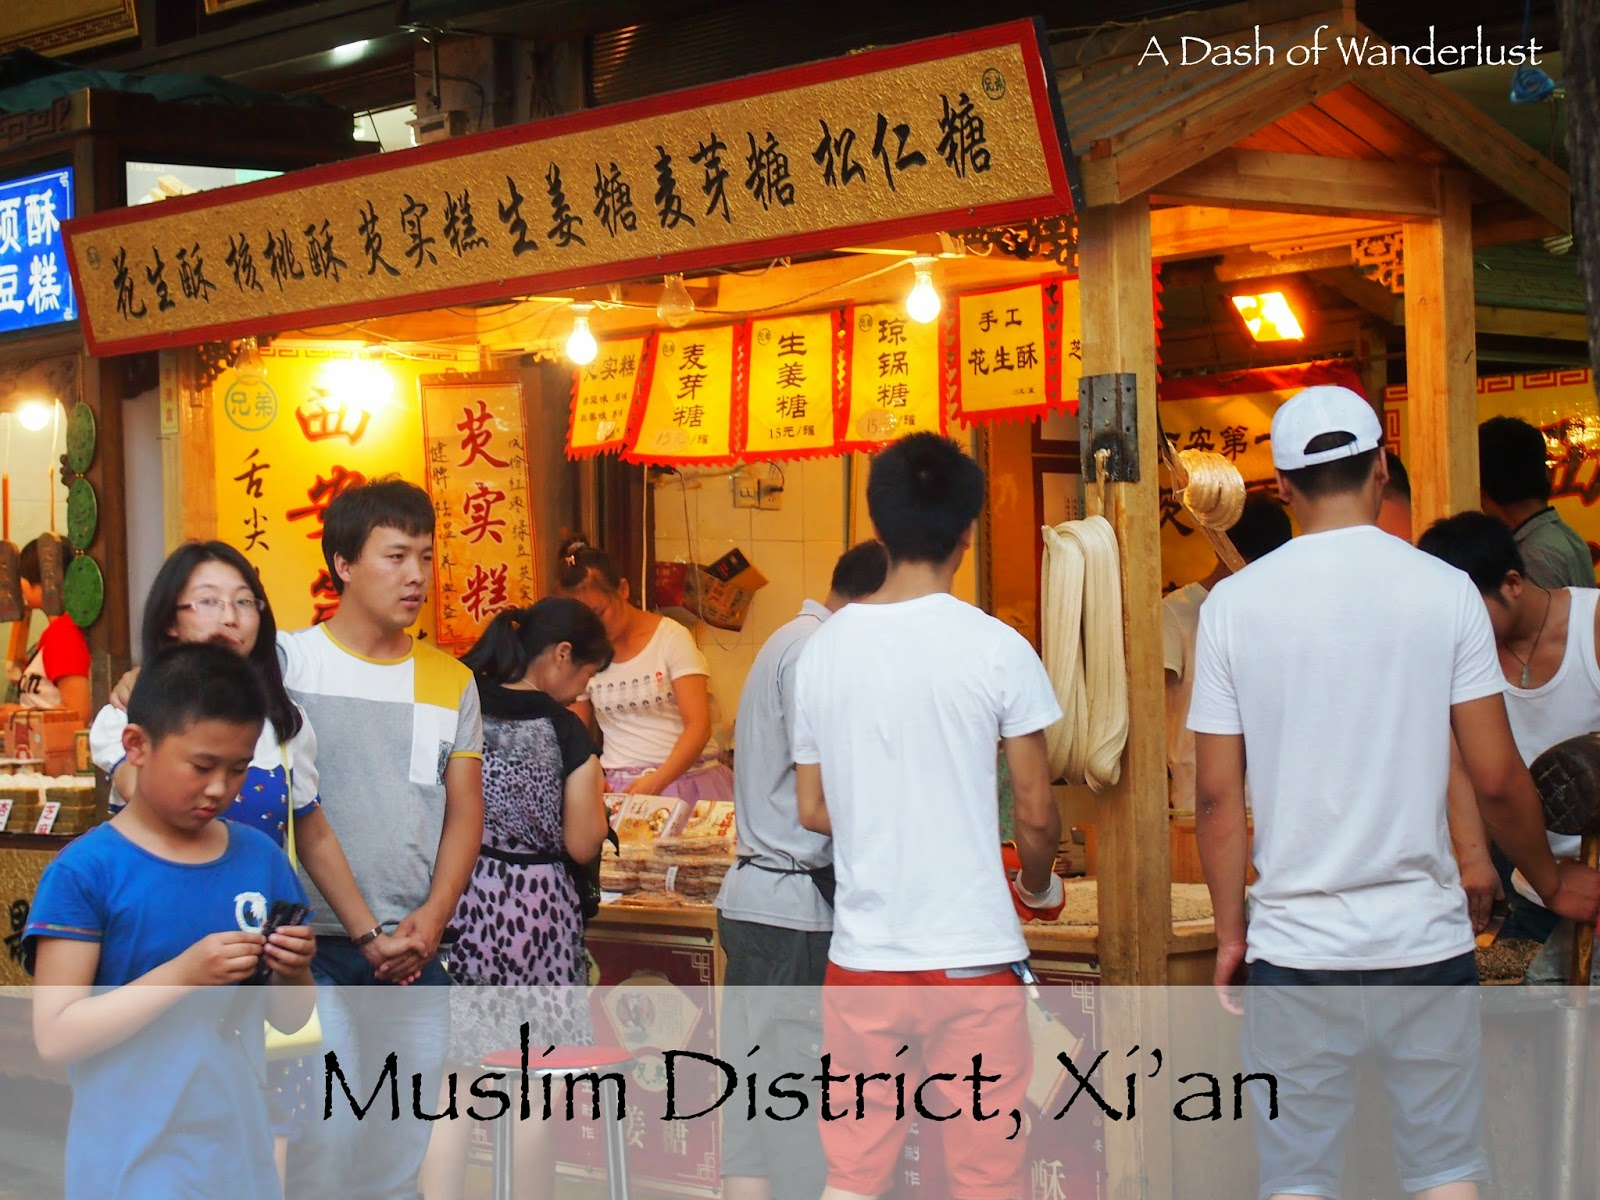 The Muslim District in Xi'an, China